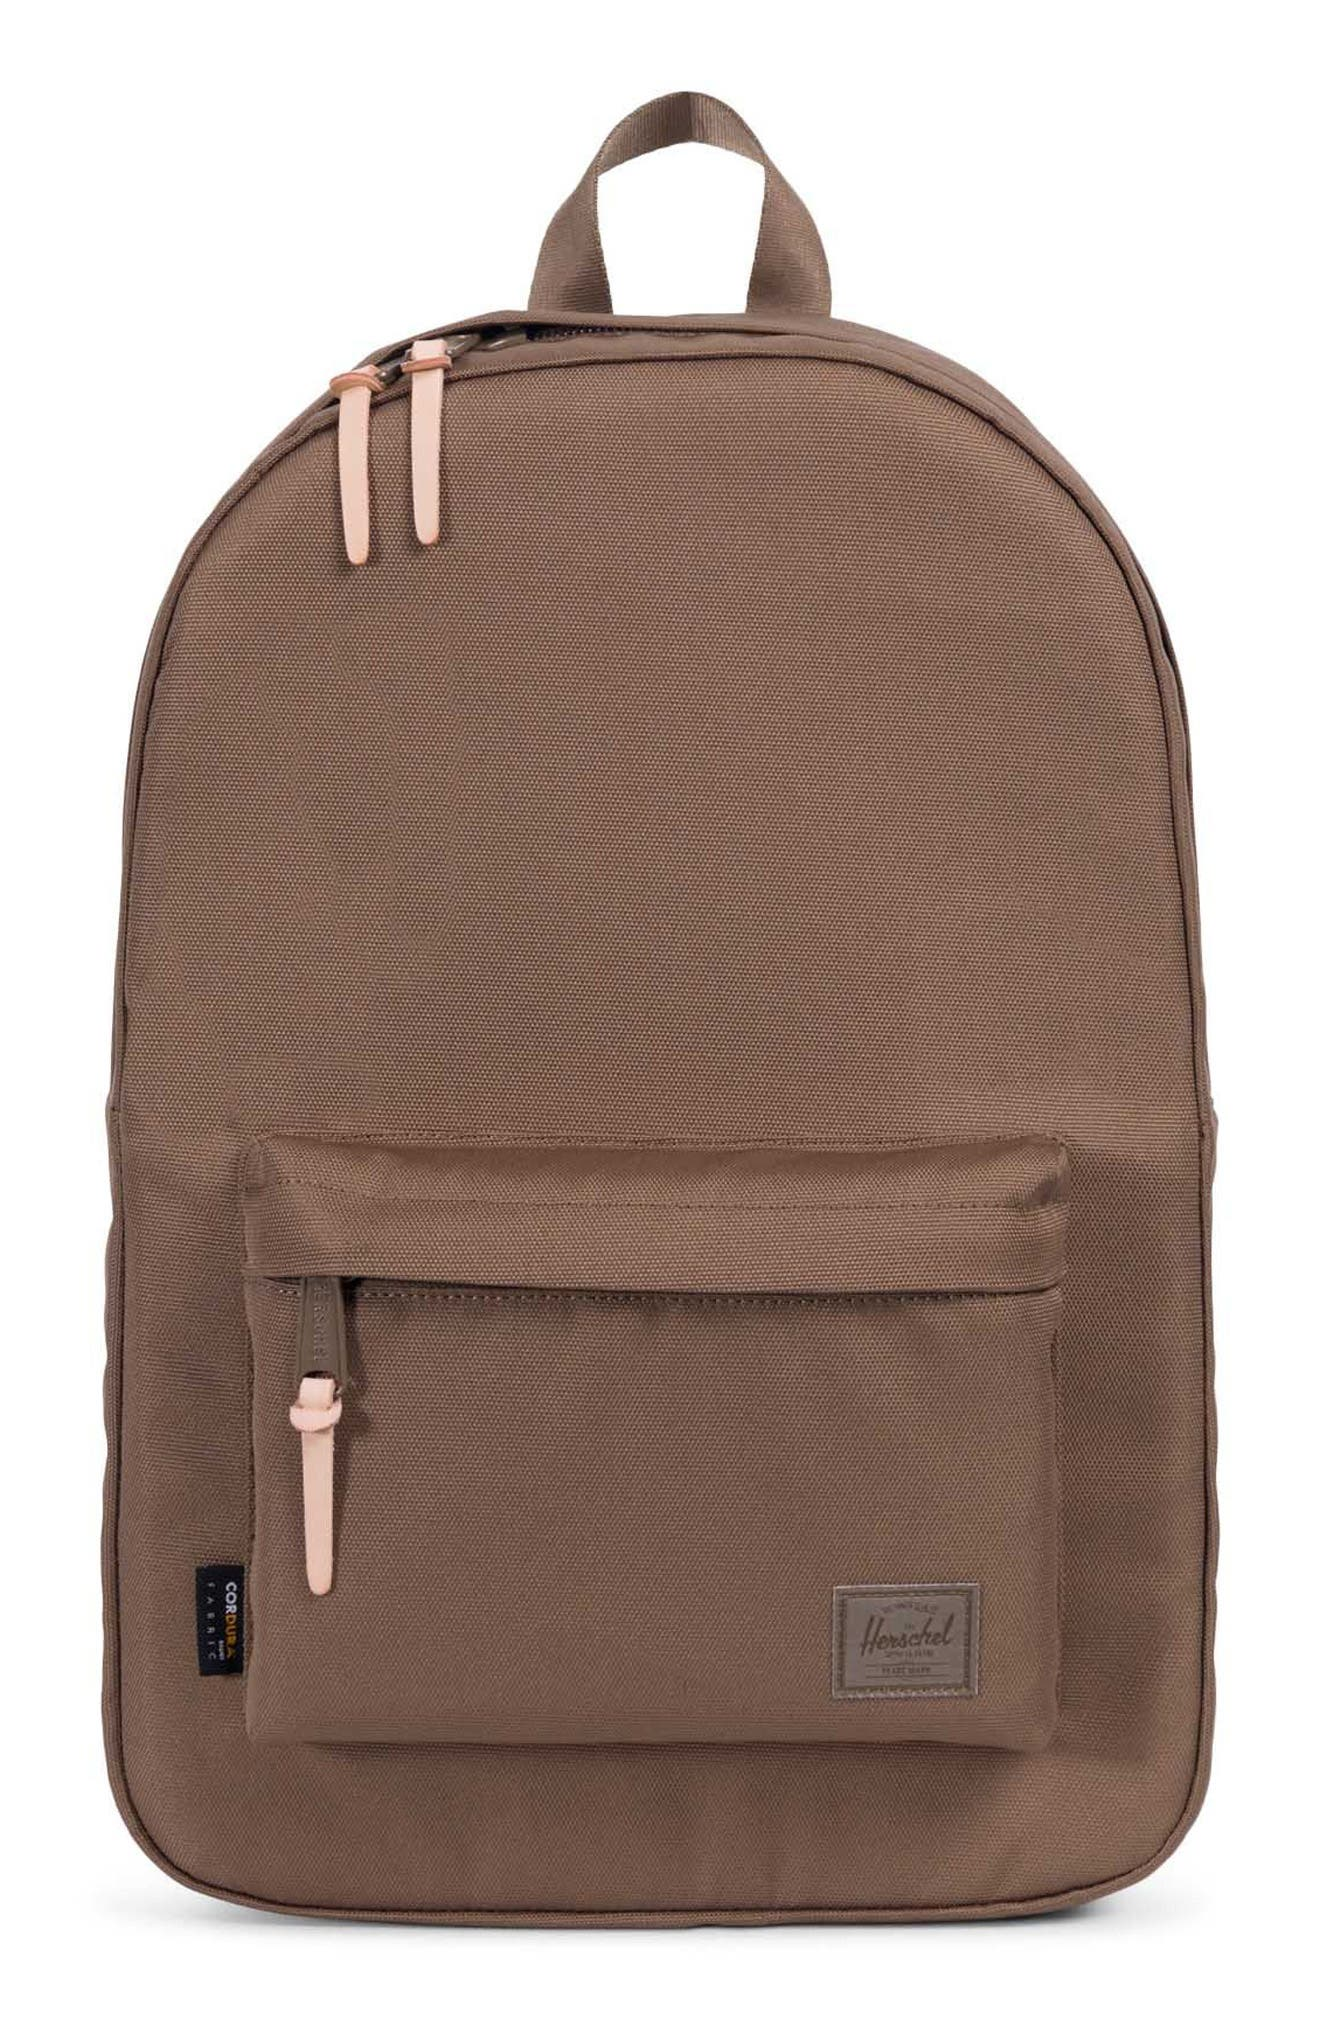 Winlaw Backpack,                         Main,                         color, Cub